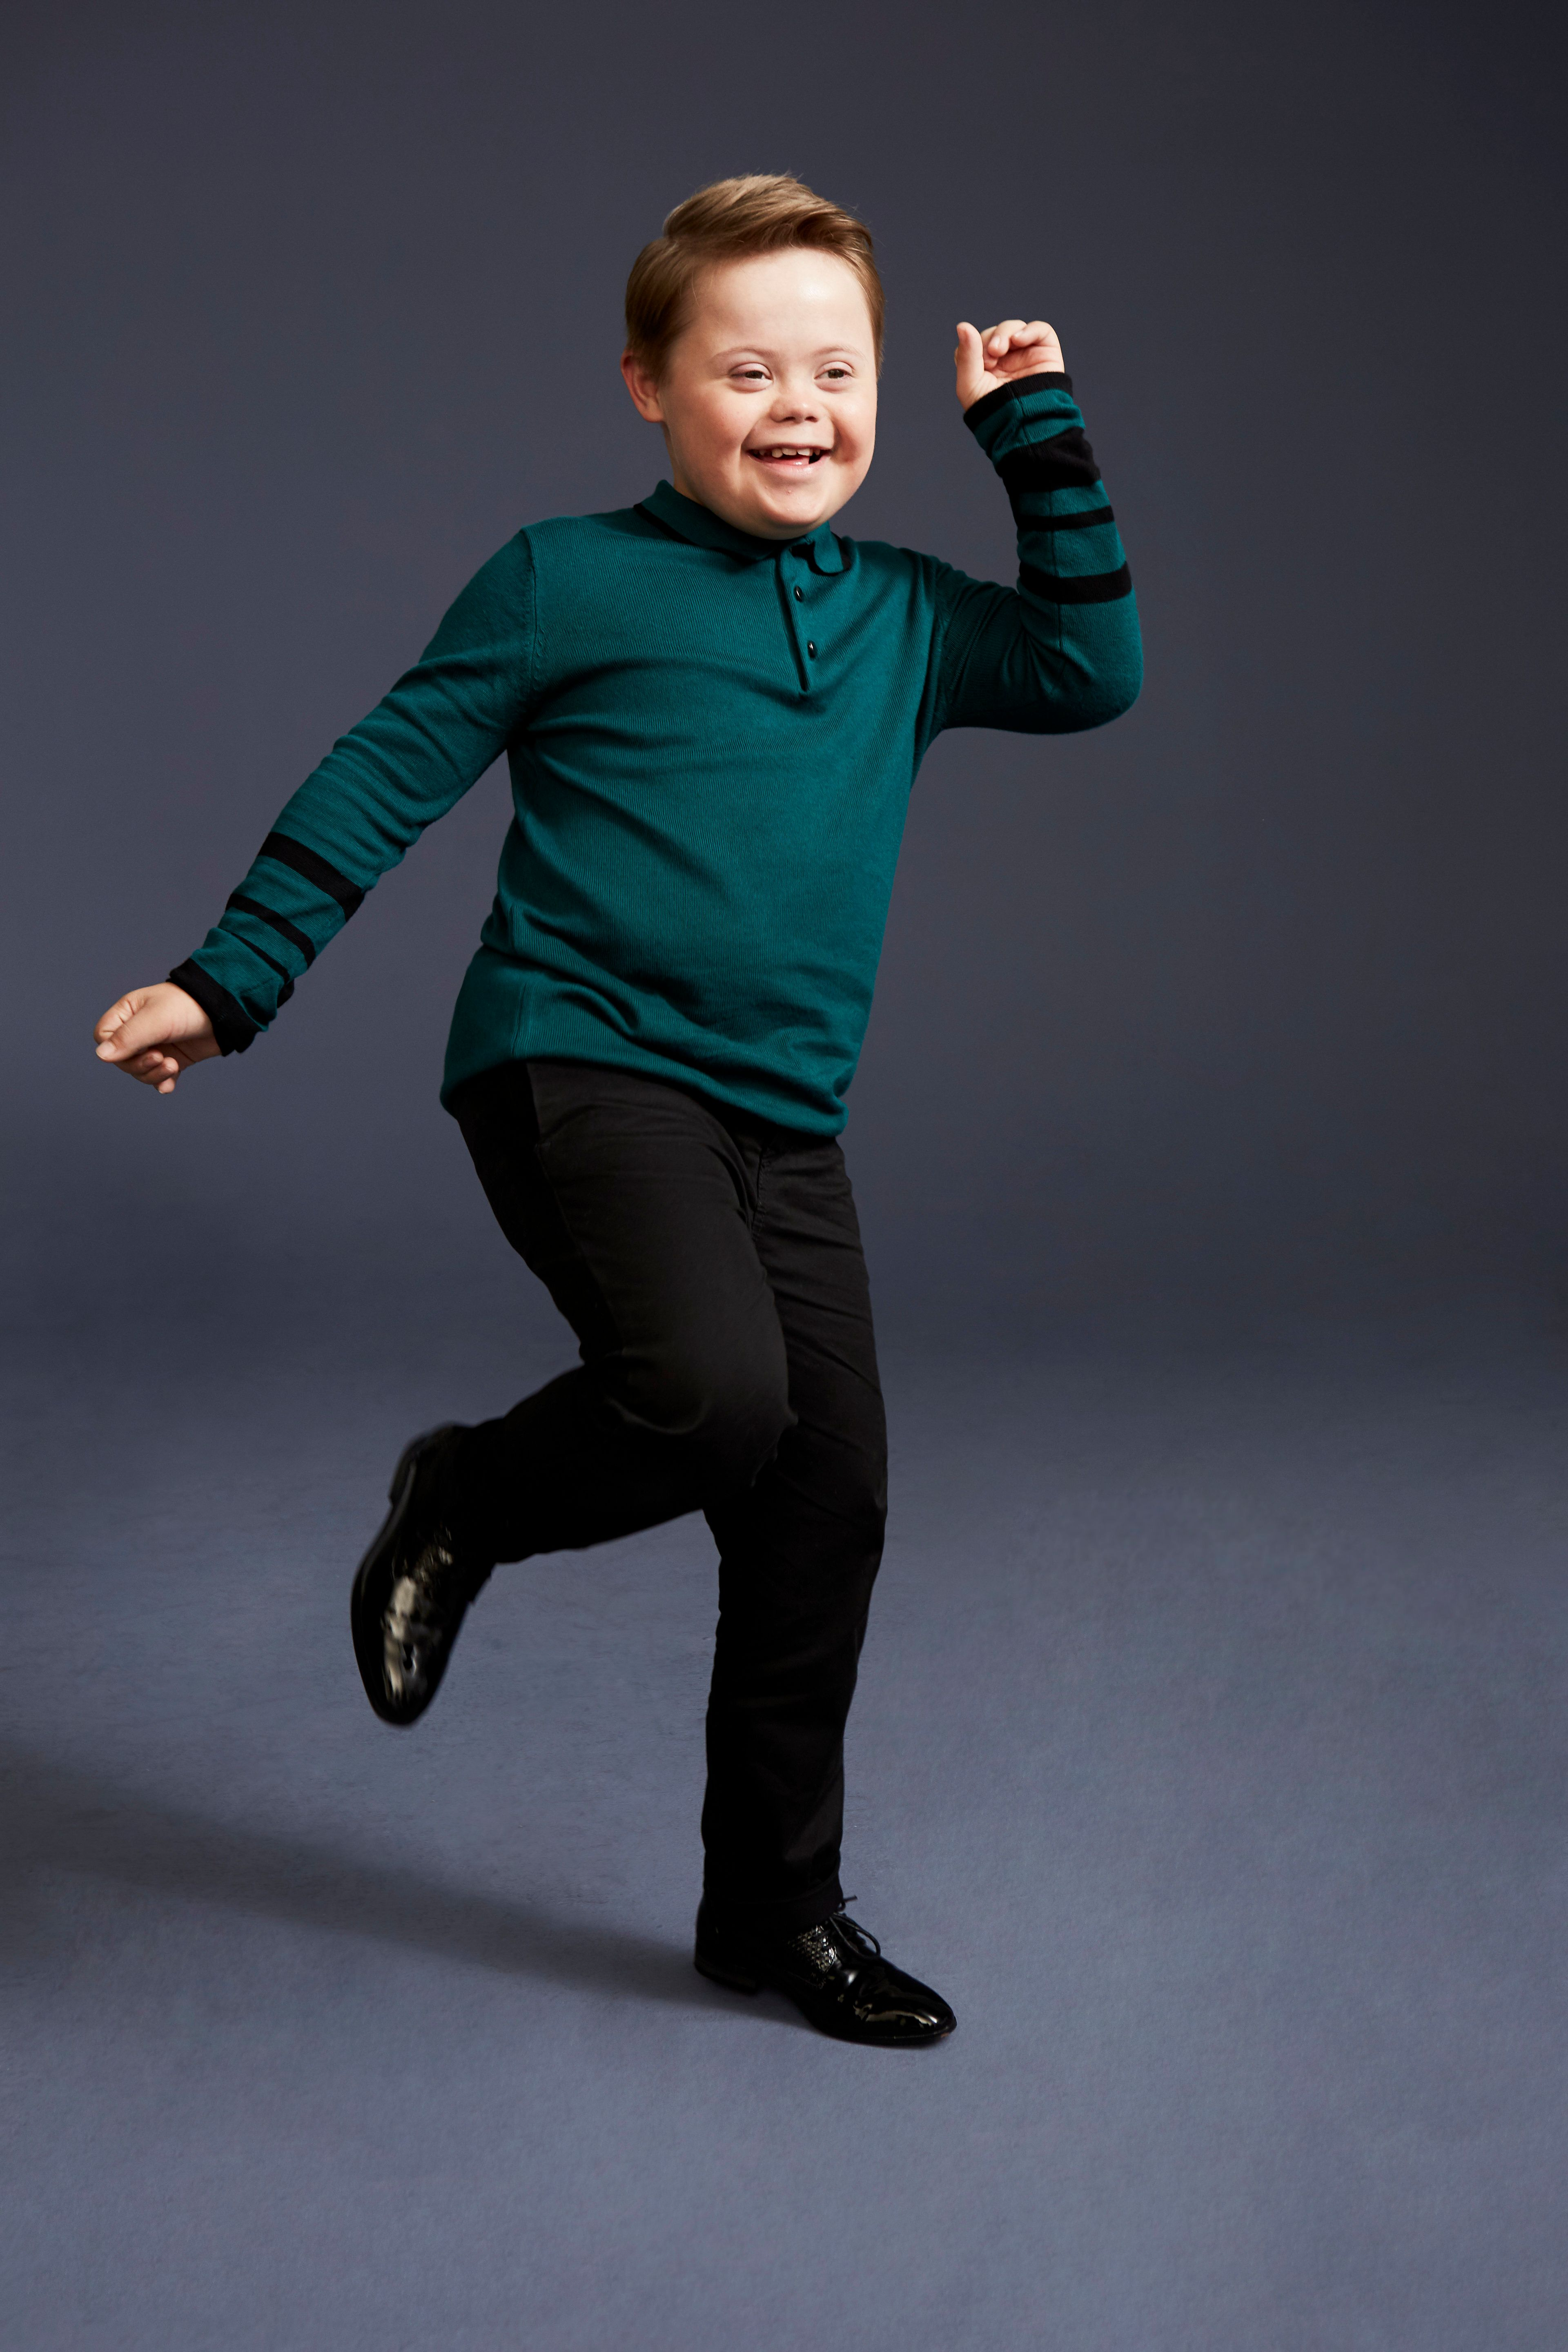 Parents Share Why They Hope Their Son Starring In A River Island Advert Will Change The